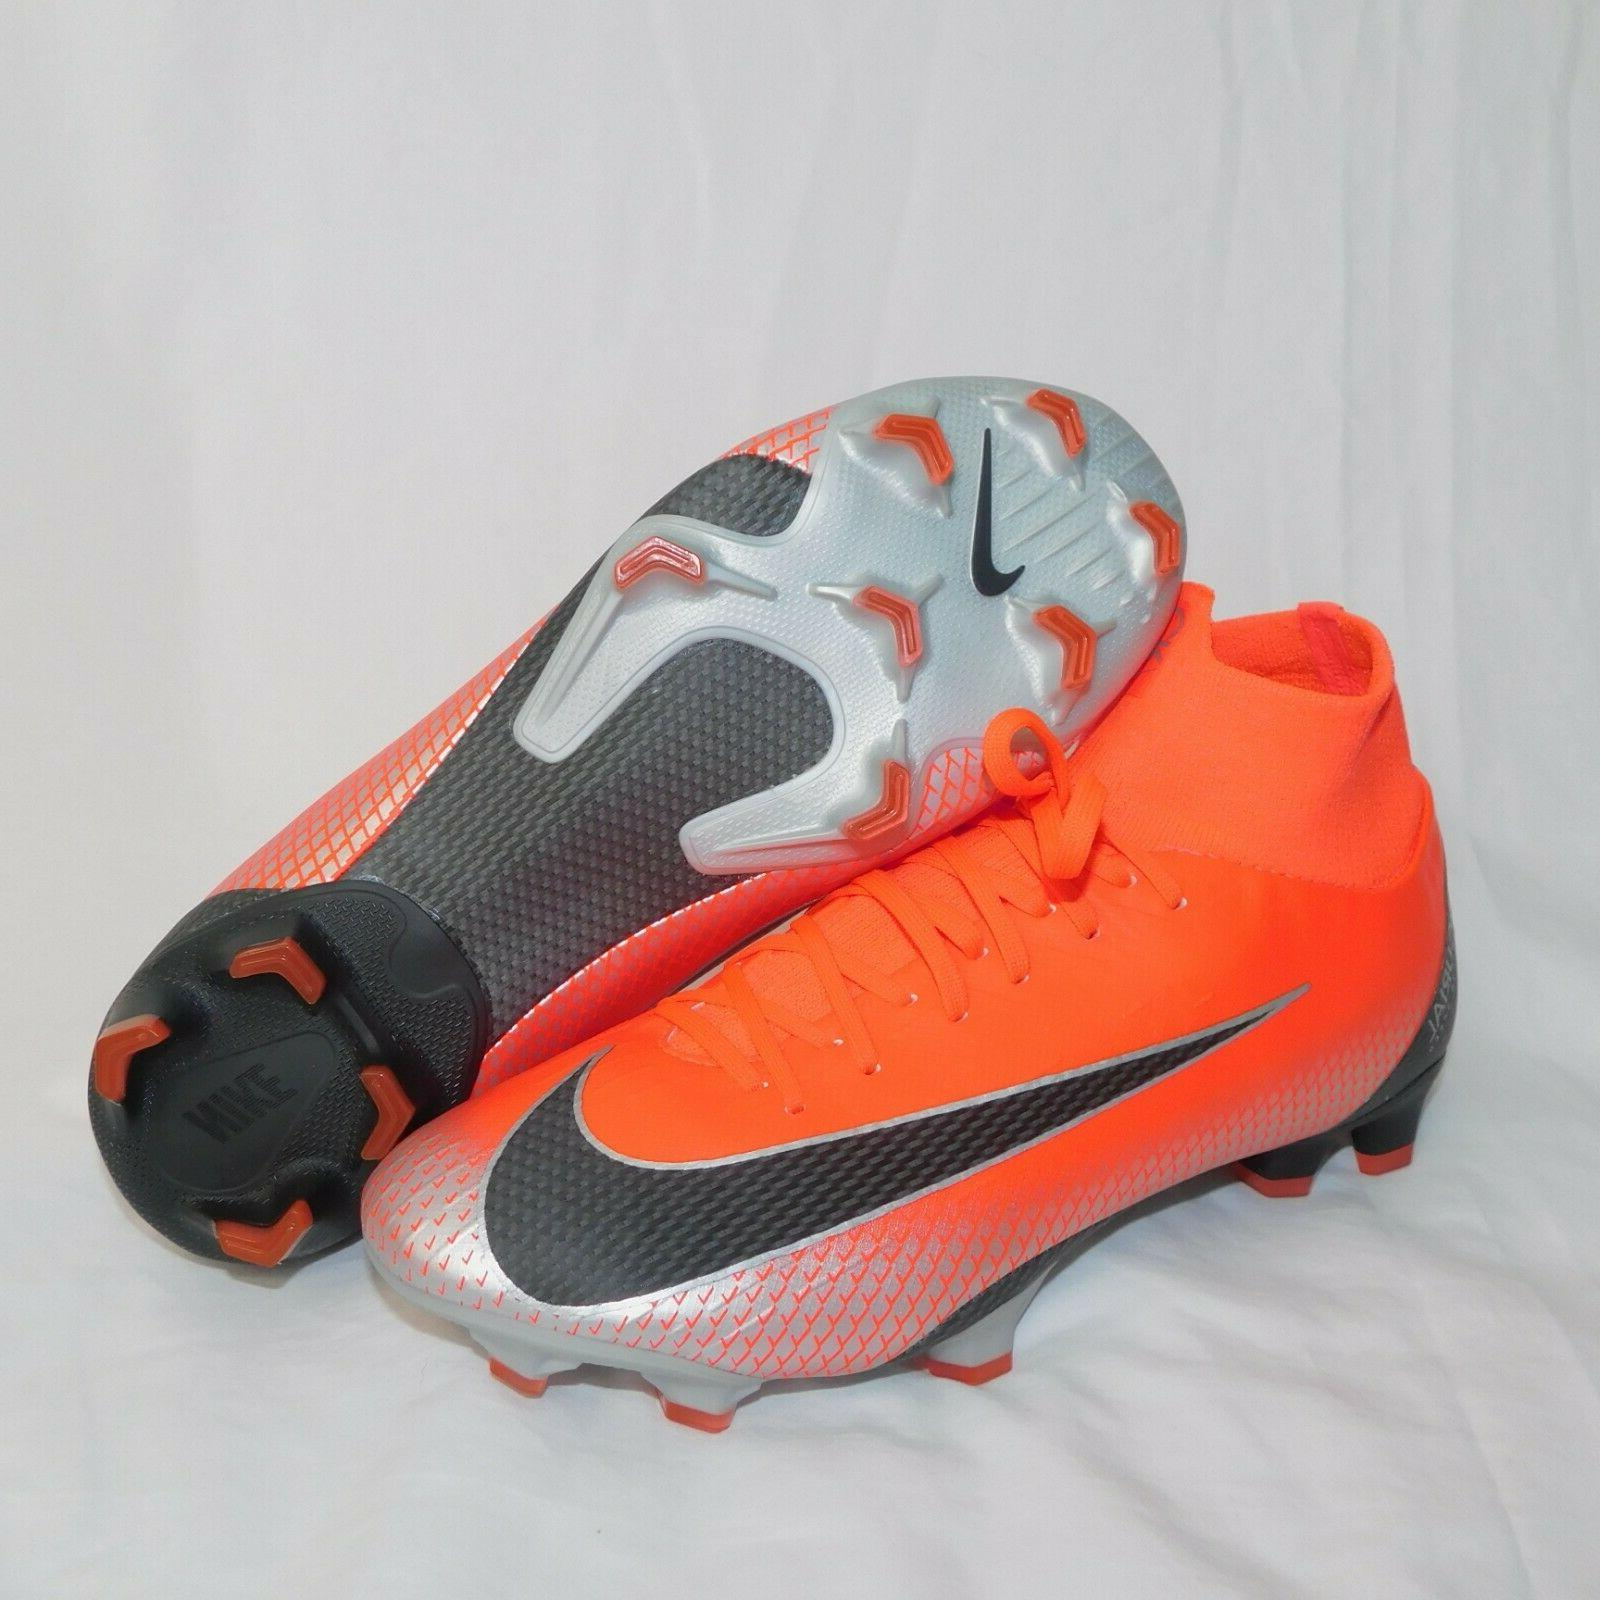 Nike Superfly Pro Bright Crimson Cleat